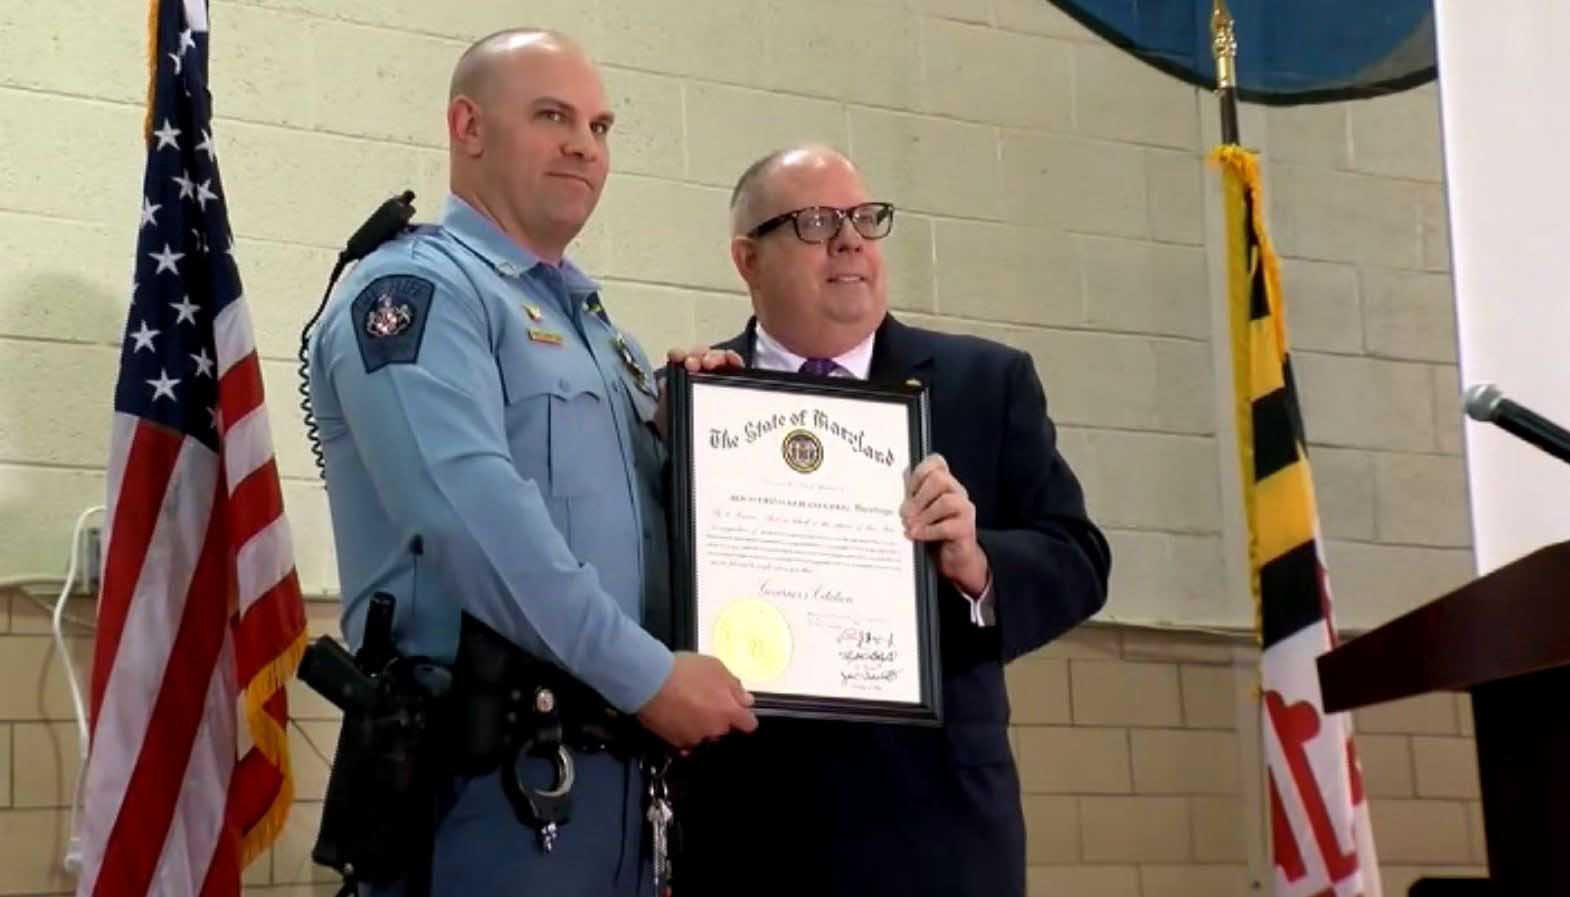 Blaine Gaskill, the Maryland school resource officer who helped end a shooting at a high school last month, was honored Thursday. (Source: WJLA/CNN)